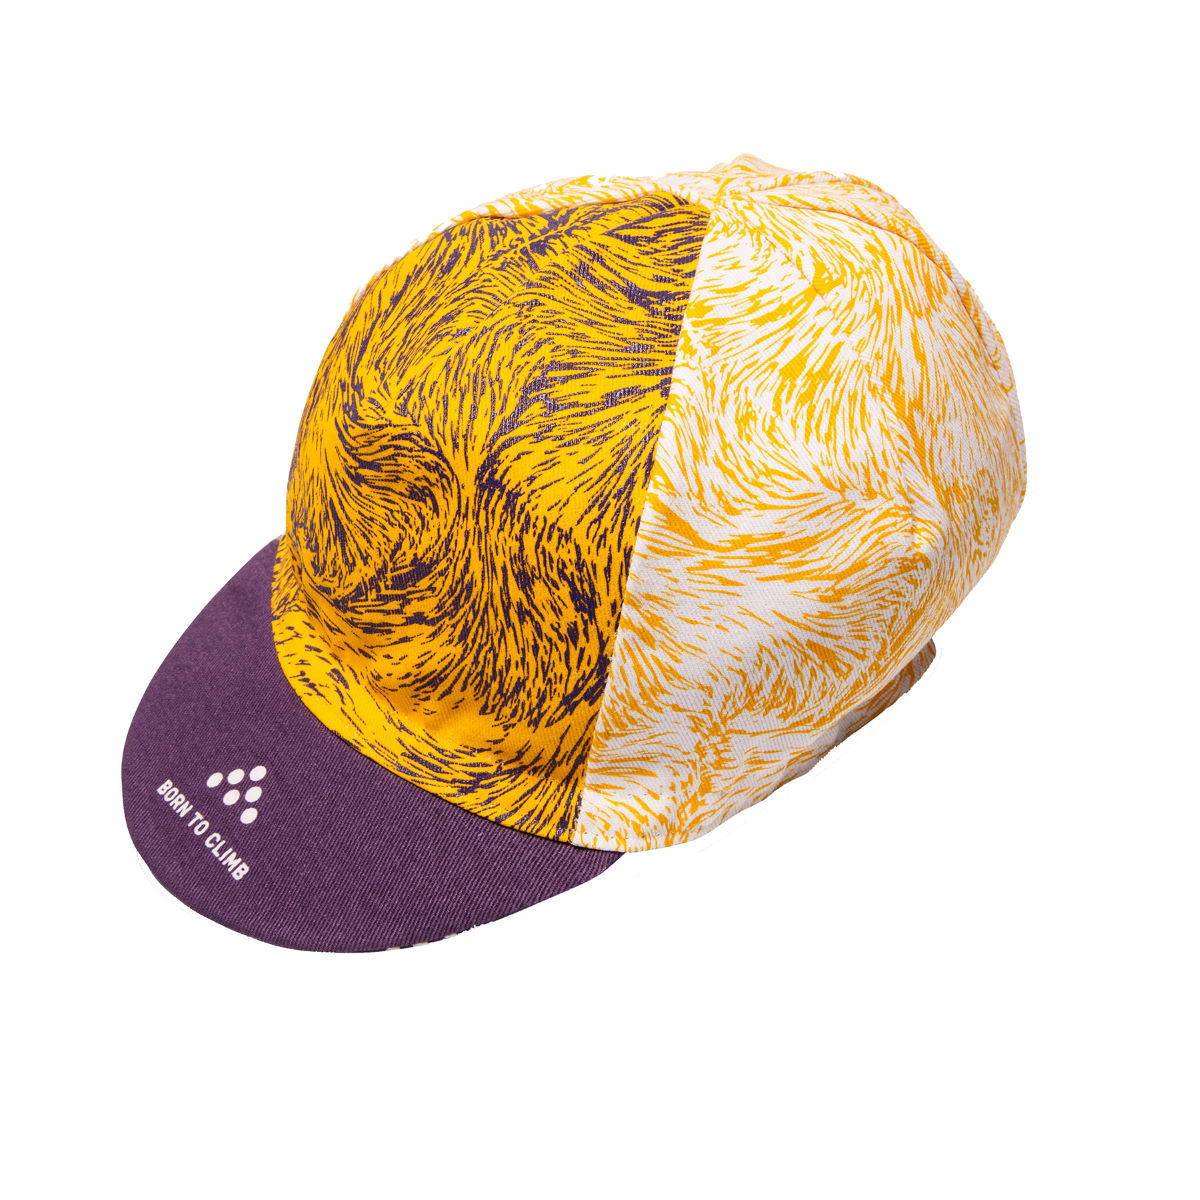 Casquette Isadore Mullholand Climbers - Taille unique Yellow/Purple